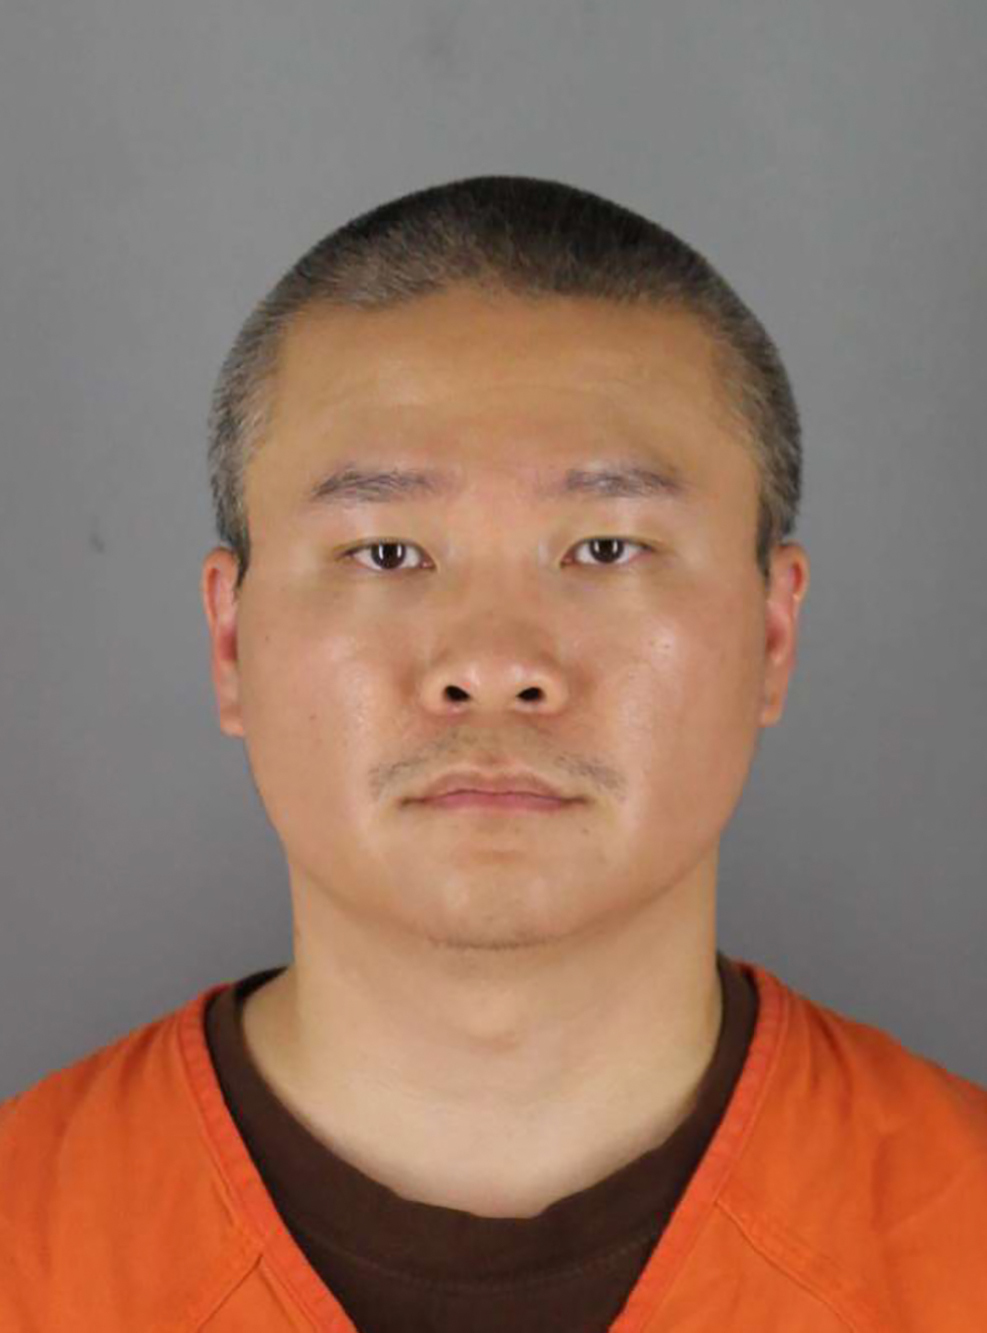 This combination of photos provided by the Hennepin County Sheriff's Office in Minnesota on June 3, 2020, shows Tou Thao.